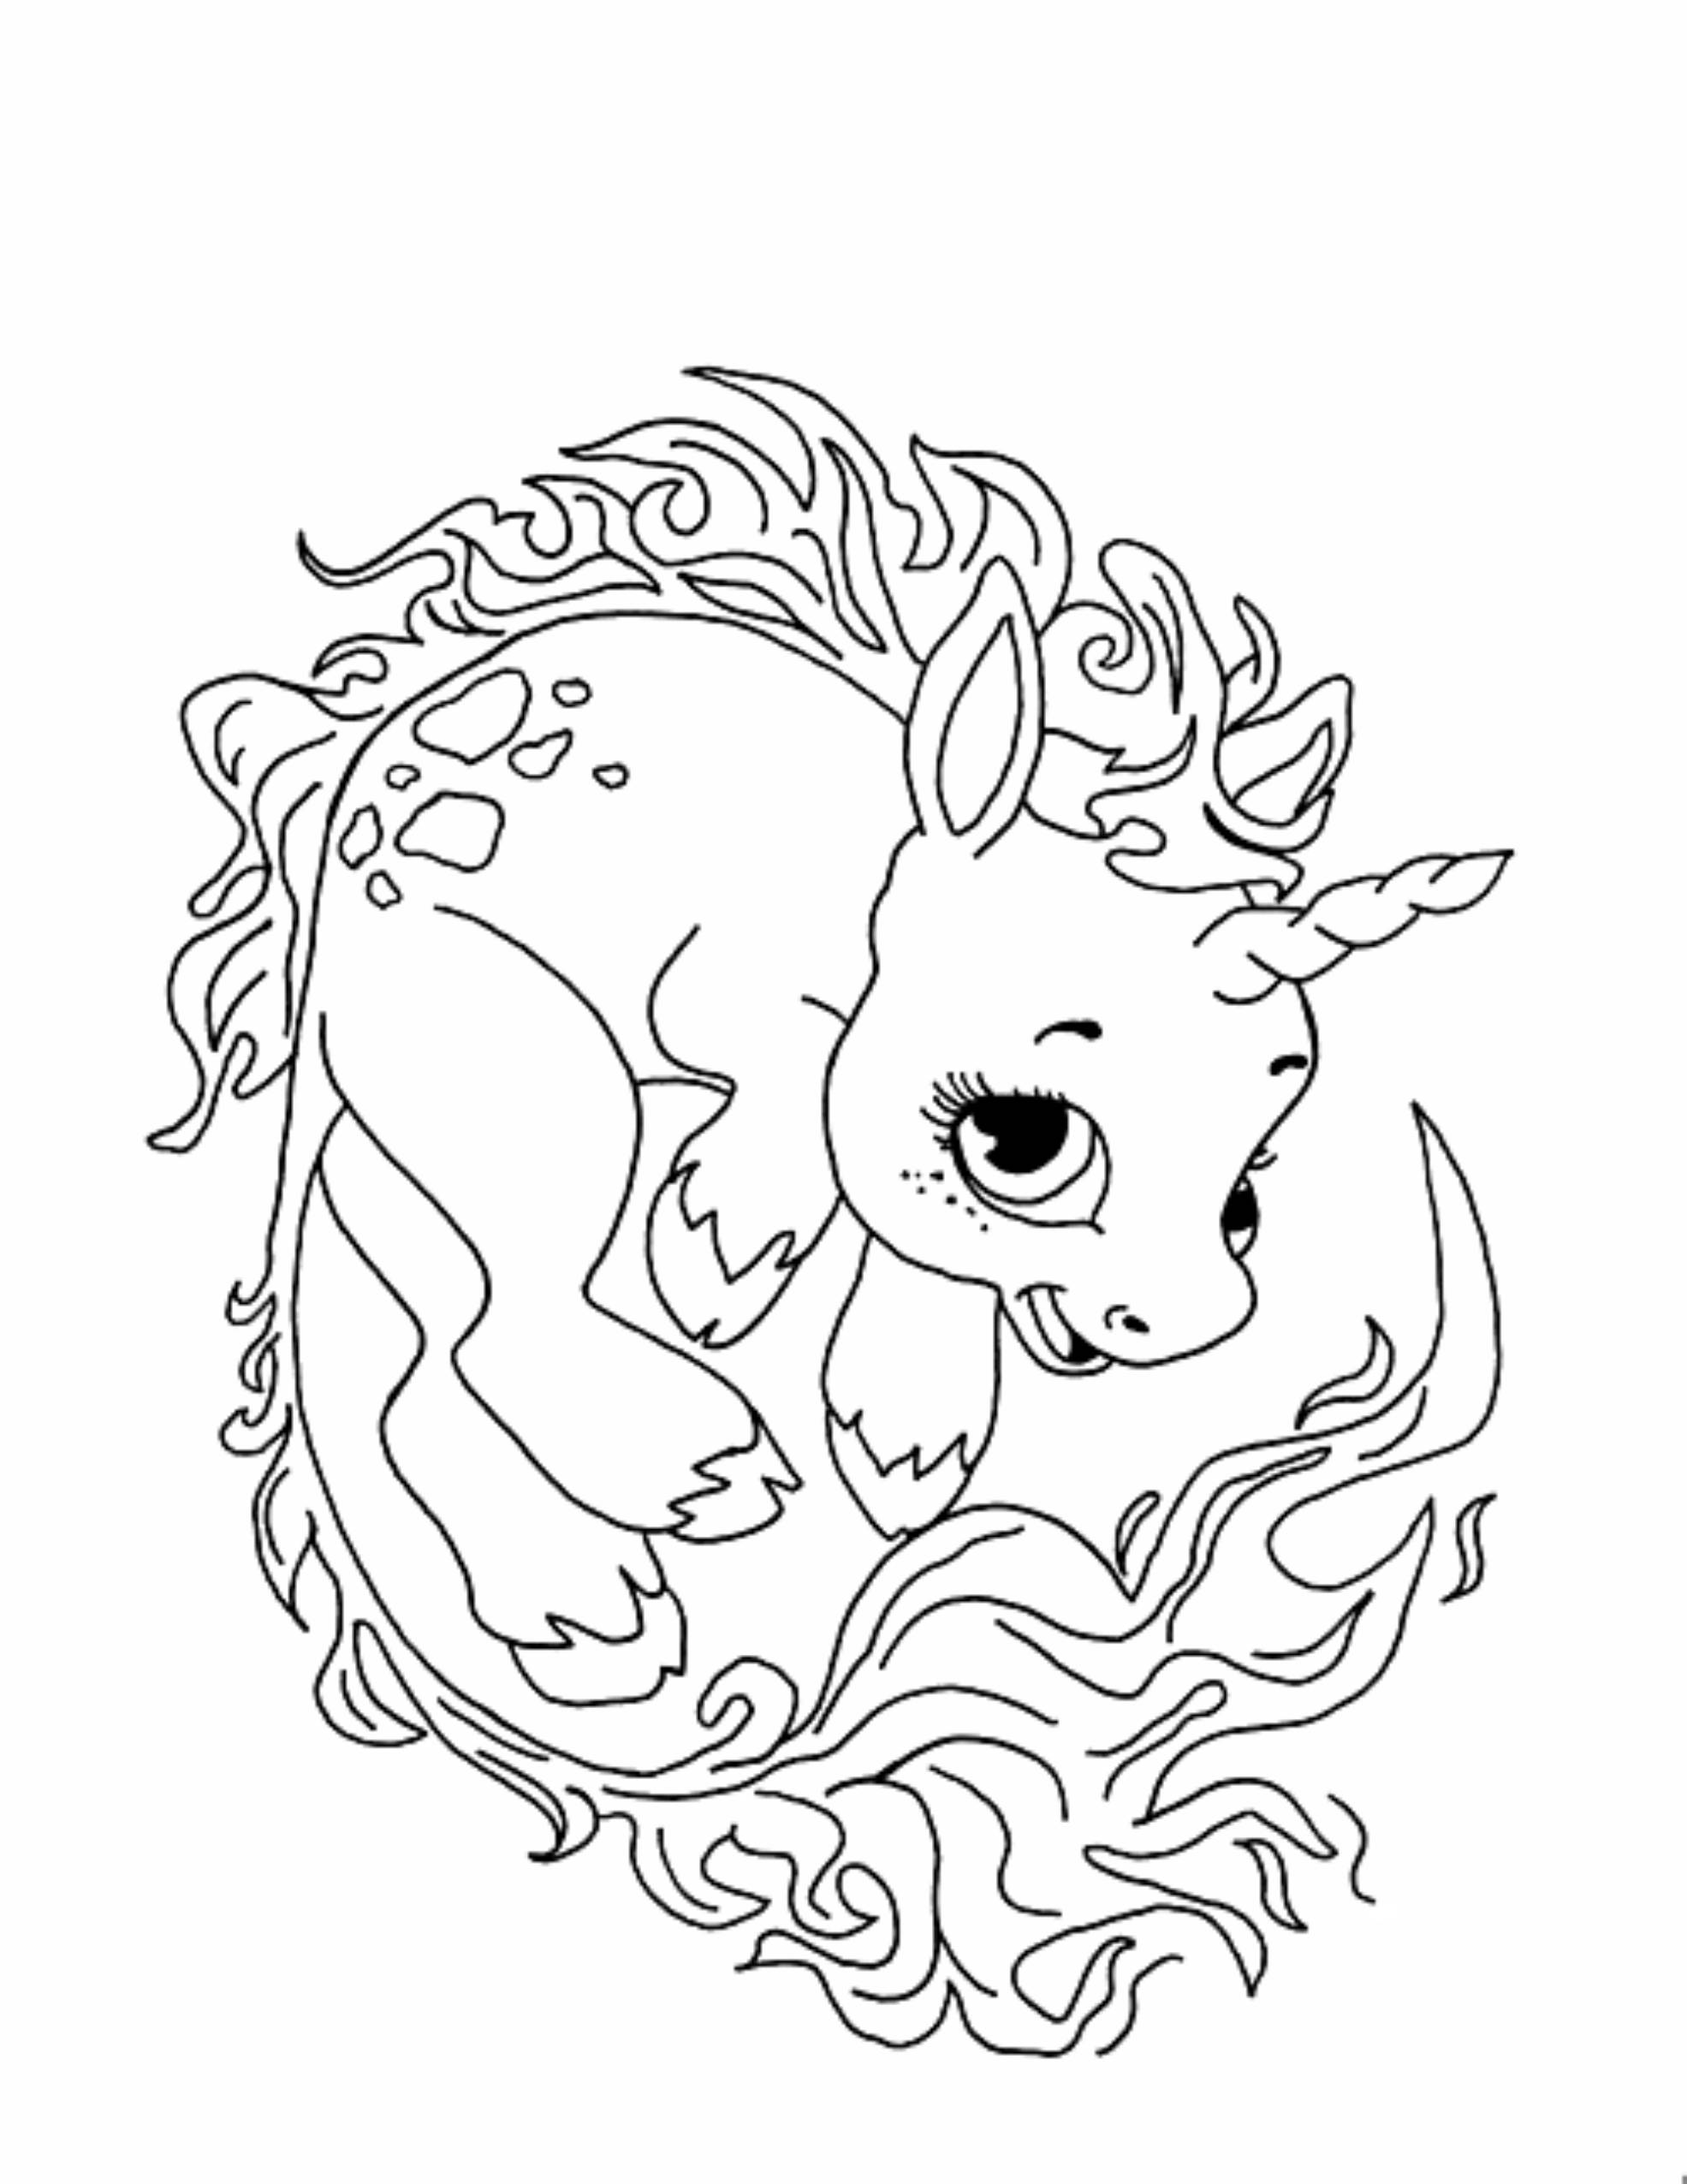 unicorn to color unicorn with bow at tail coloring page free printable color unicorn to